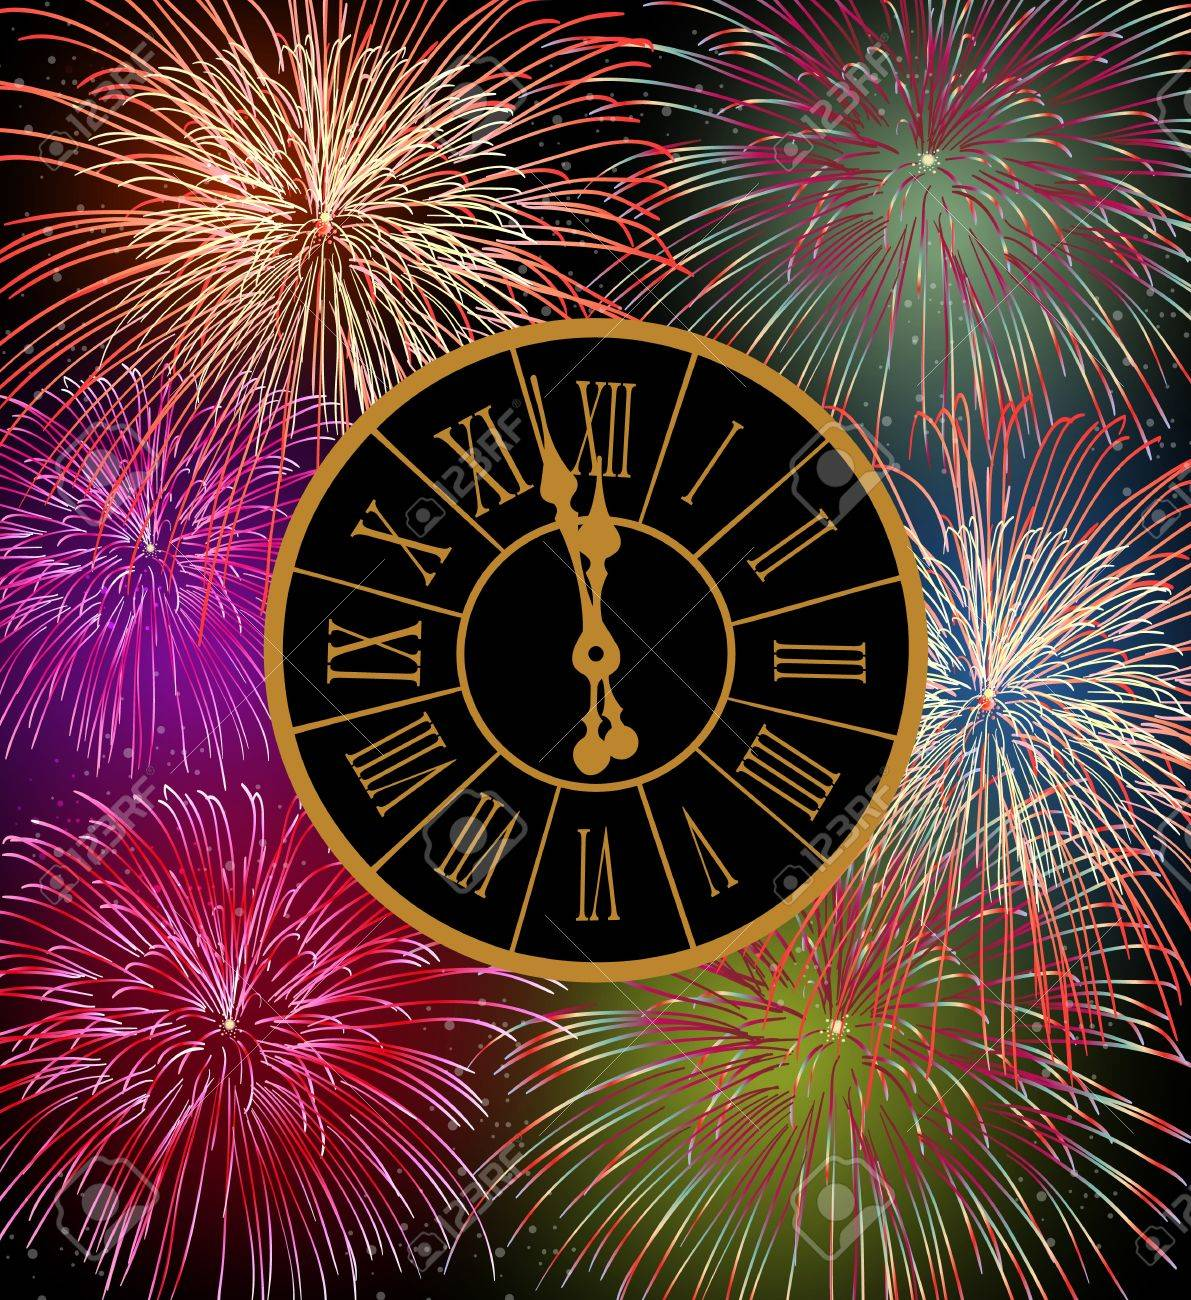 happy new year fireworks eve night time with clock with transparencies layered for easy manipulation and